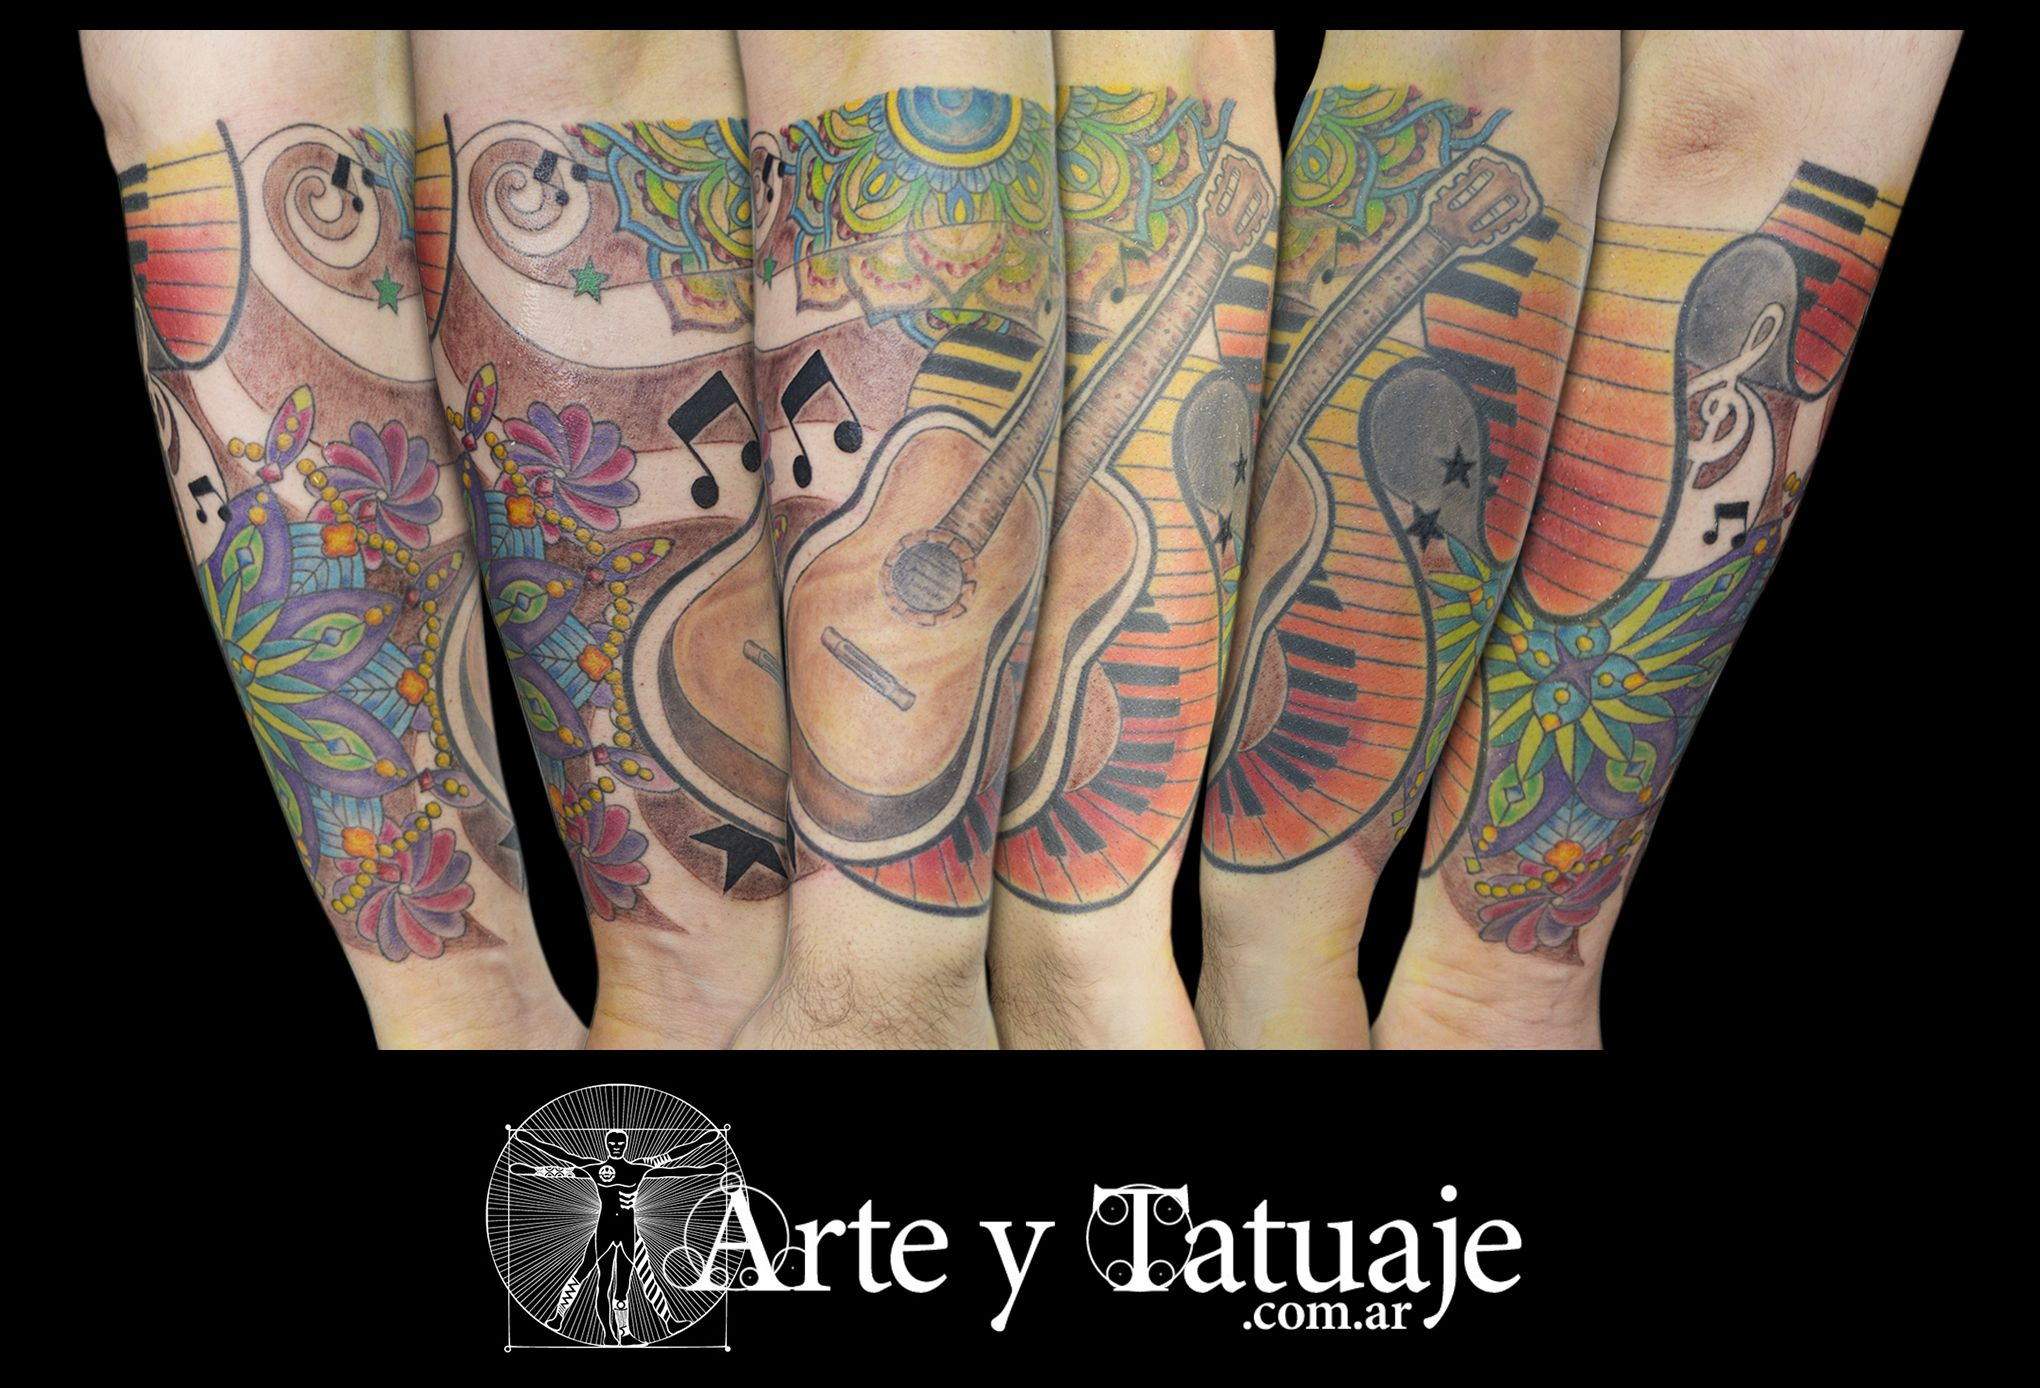 Tatuaje de guitarra y mandalas, personalizado en #arteytatuaje  wp: 1126214494   #tatuajes #mandalastattoo #guitarratattoo #tatuajemandala #ink #inklove #tattooed #tatuajesacolor #musica #Lovemusic